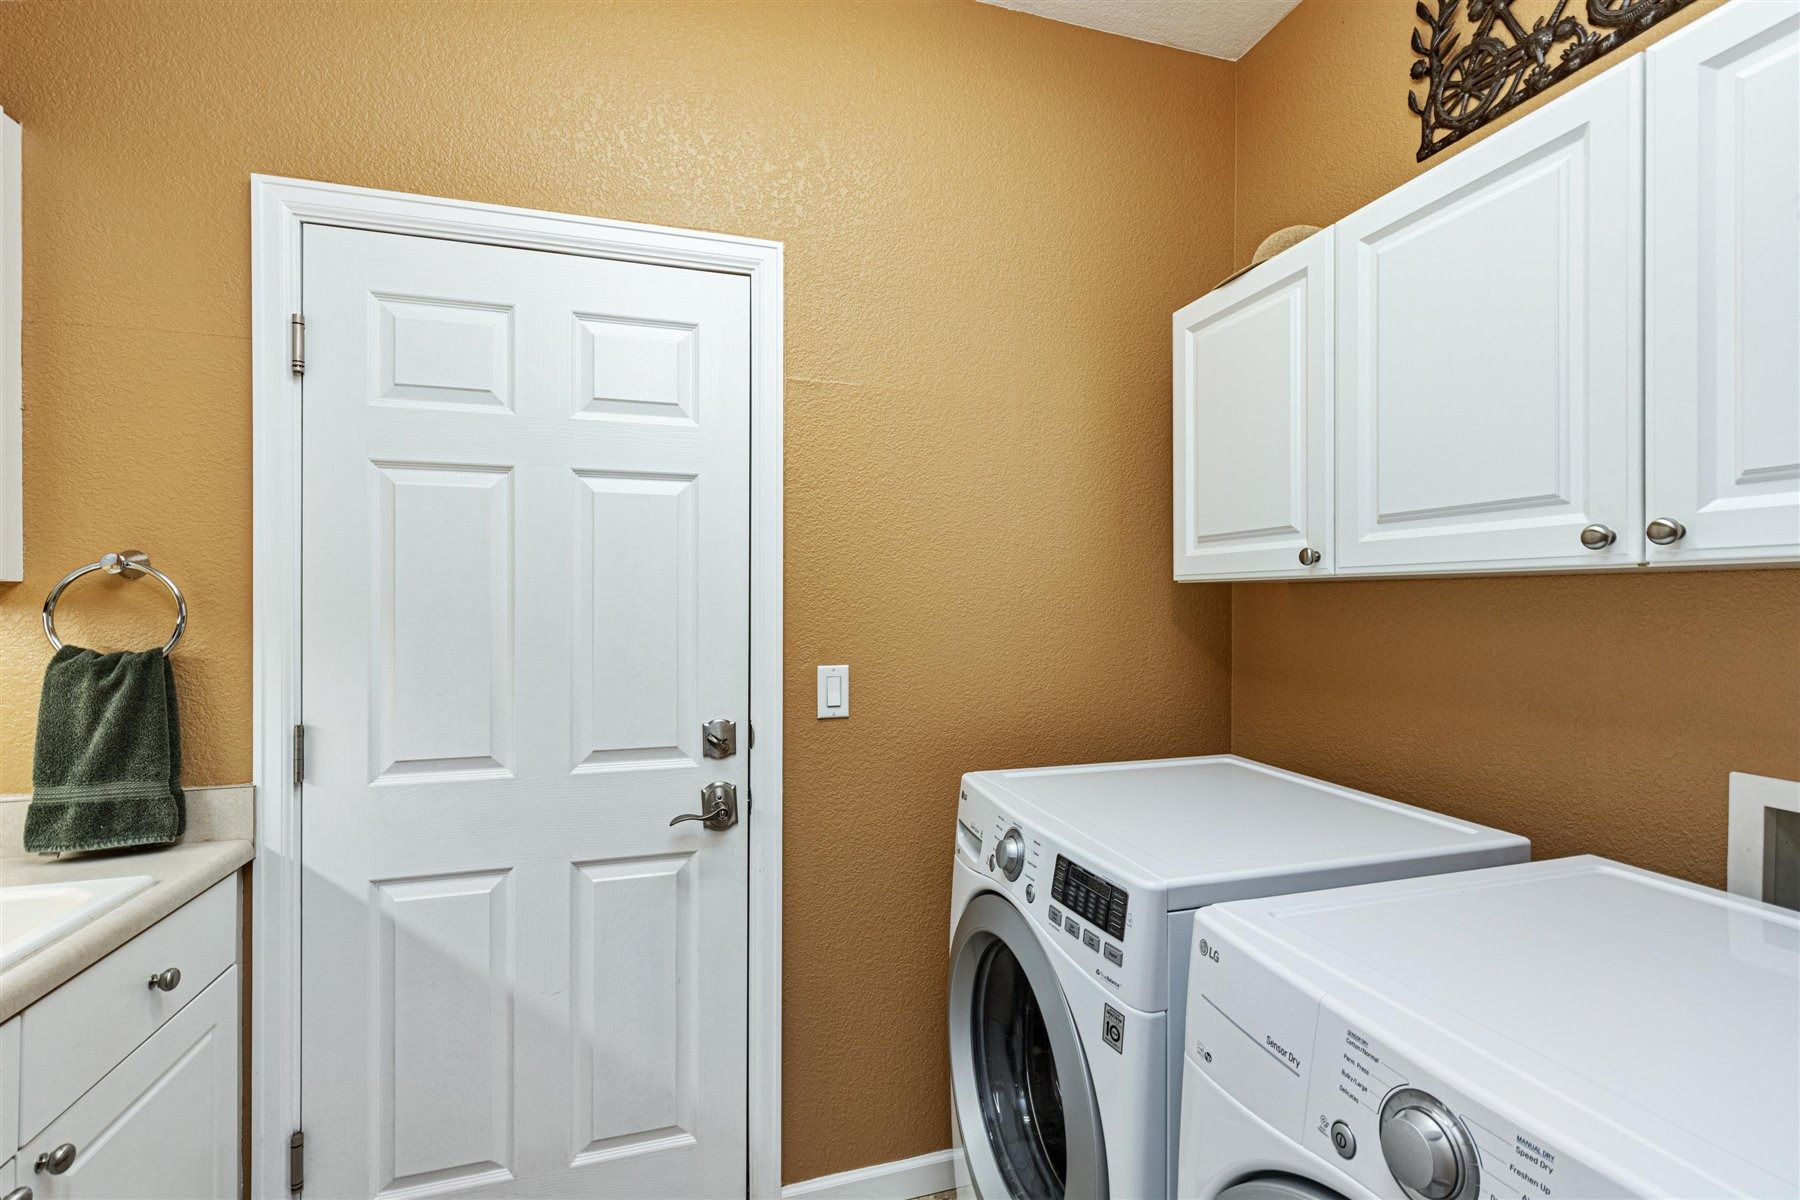 Laundry Room with Utility Sink & Cabinetry